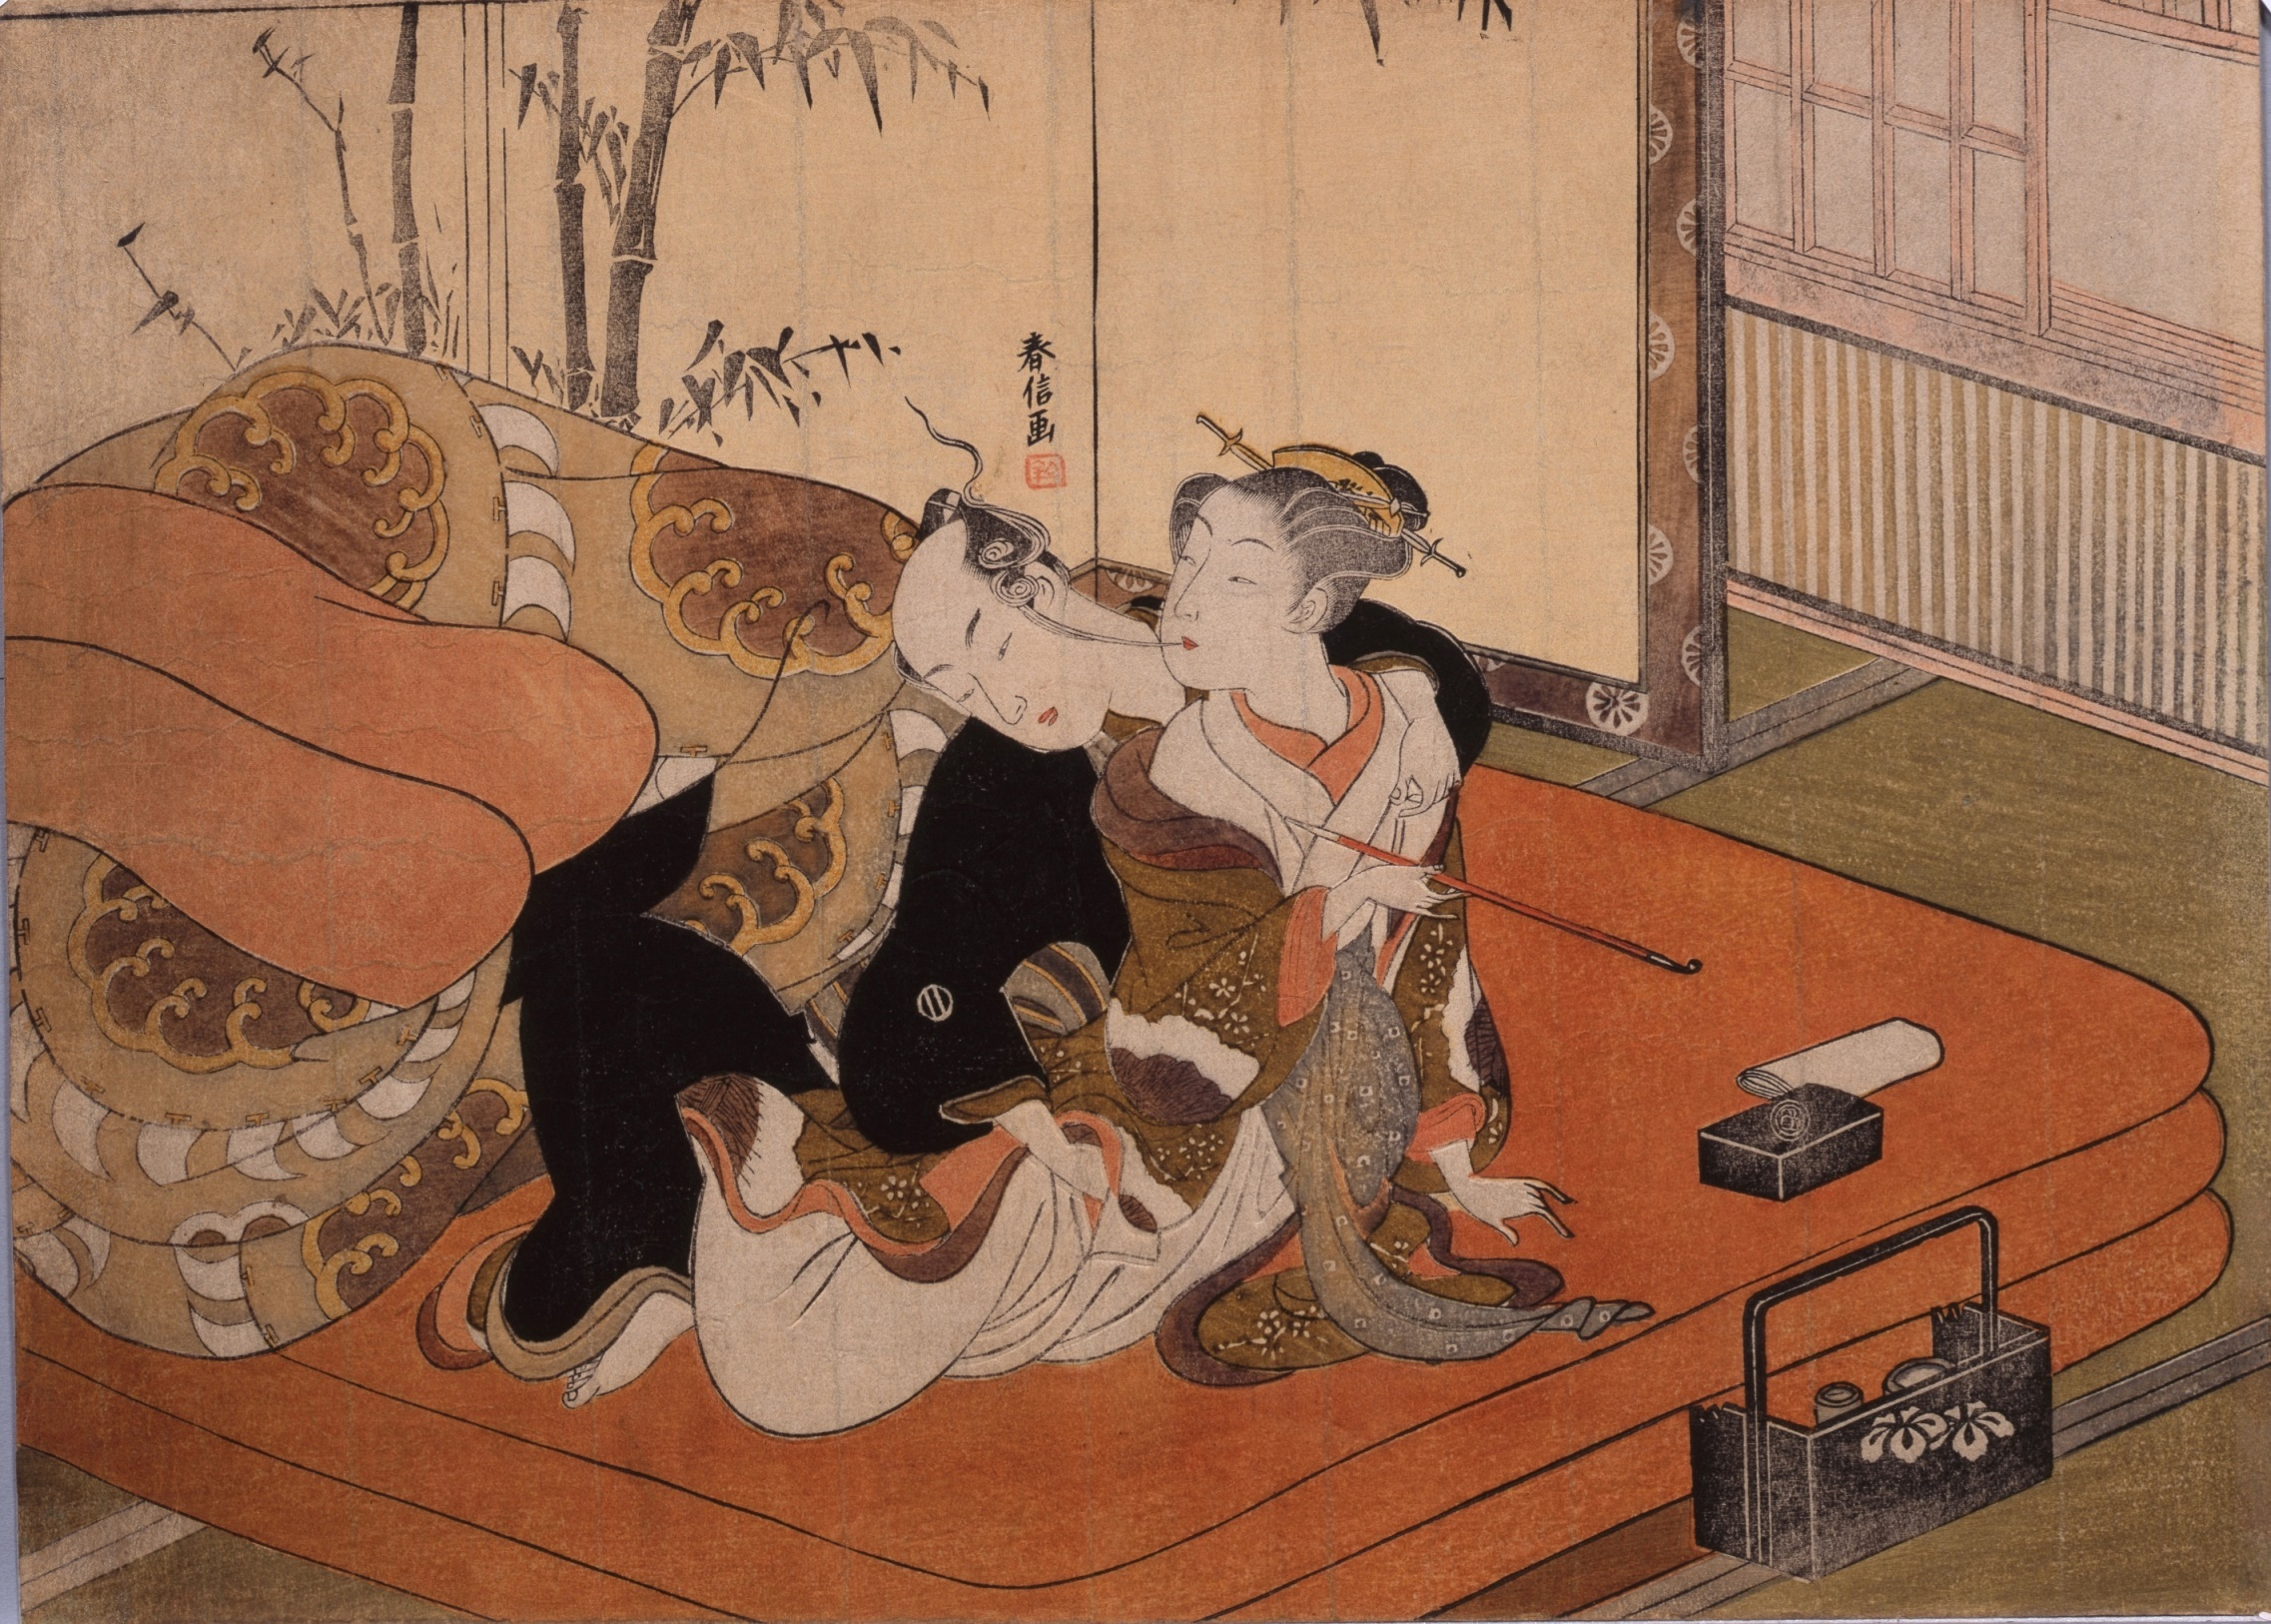 Japanese woodblock erotic